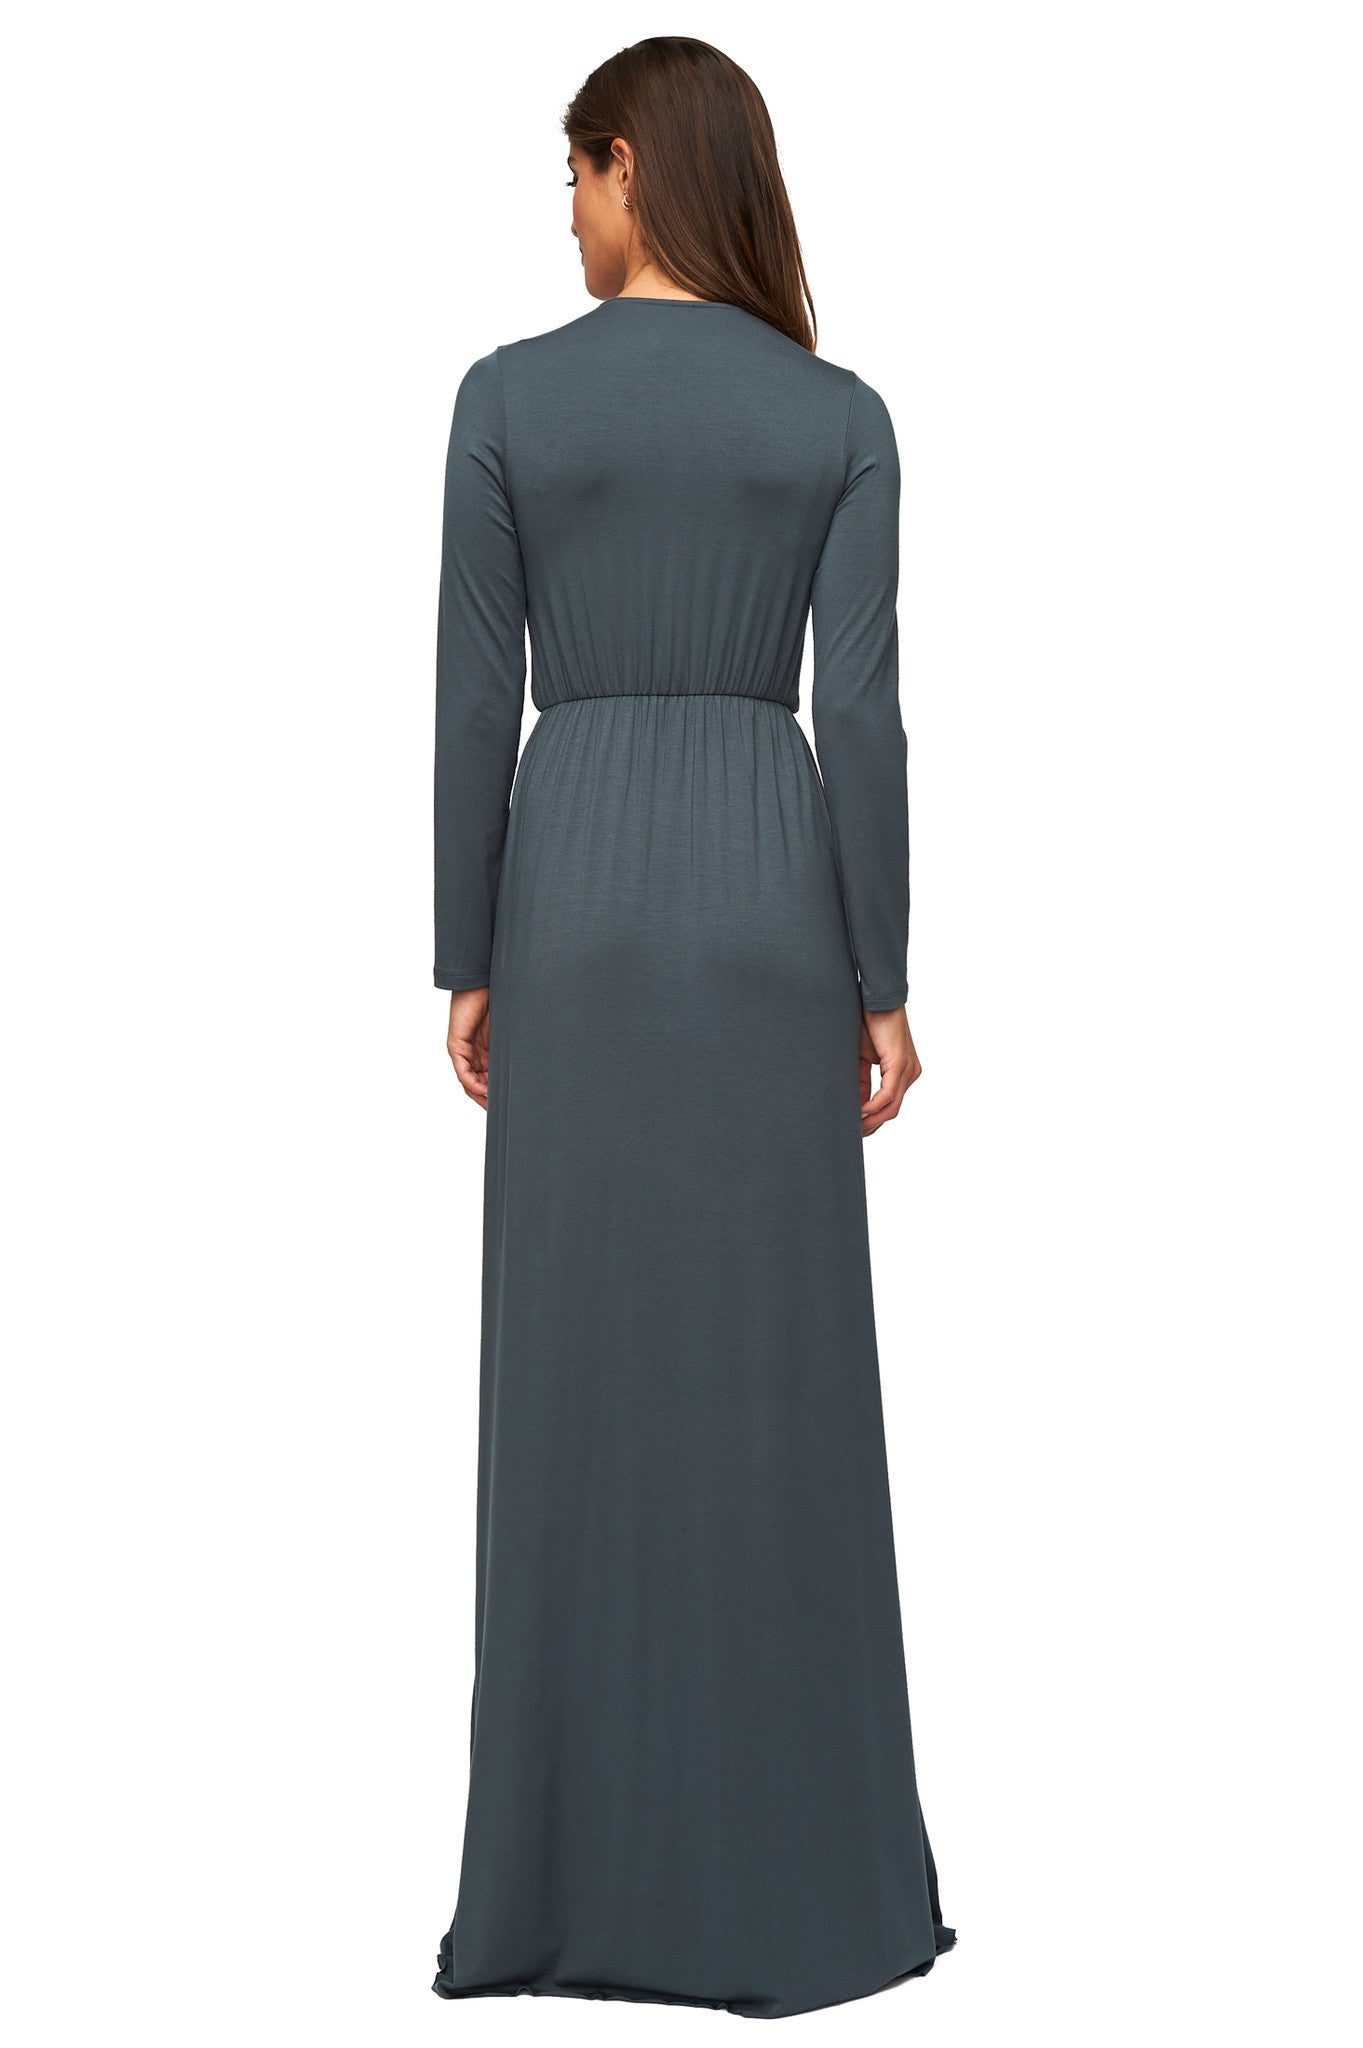 ROSEMARIE DRESS - TUSCAN